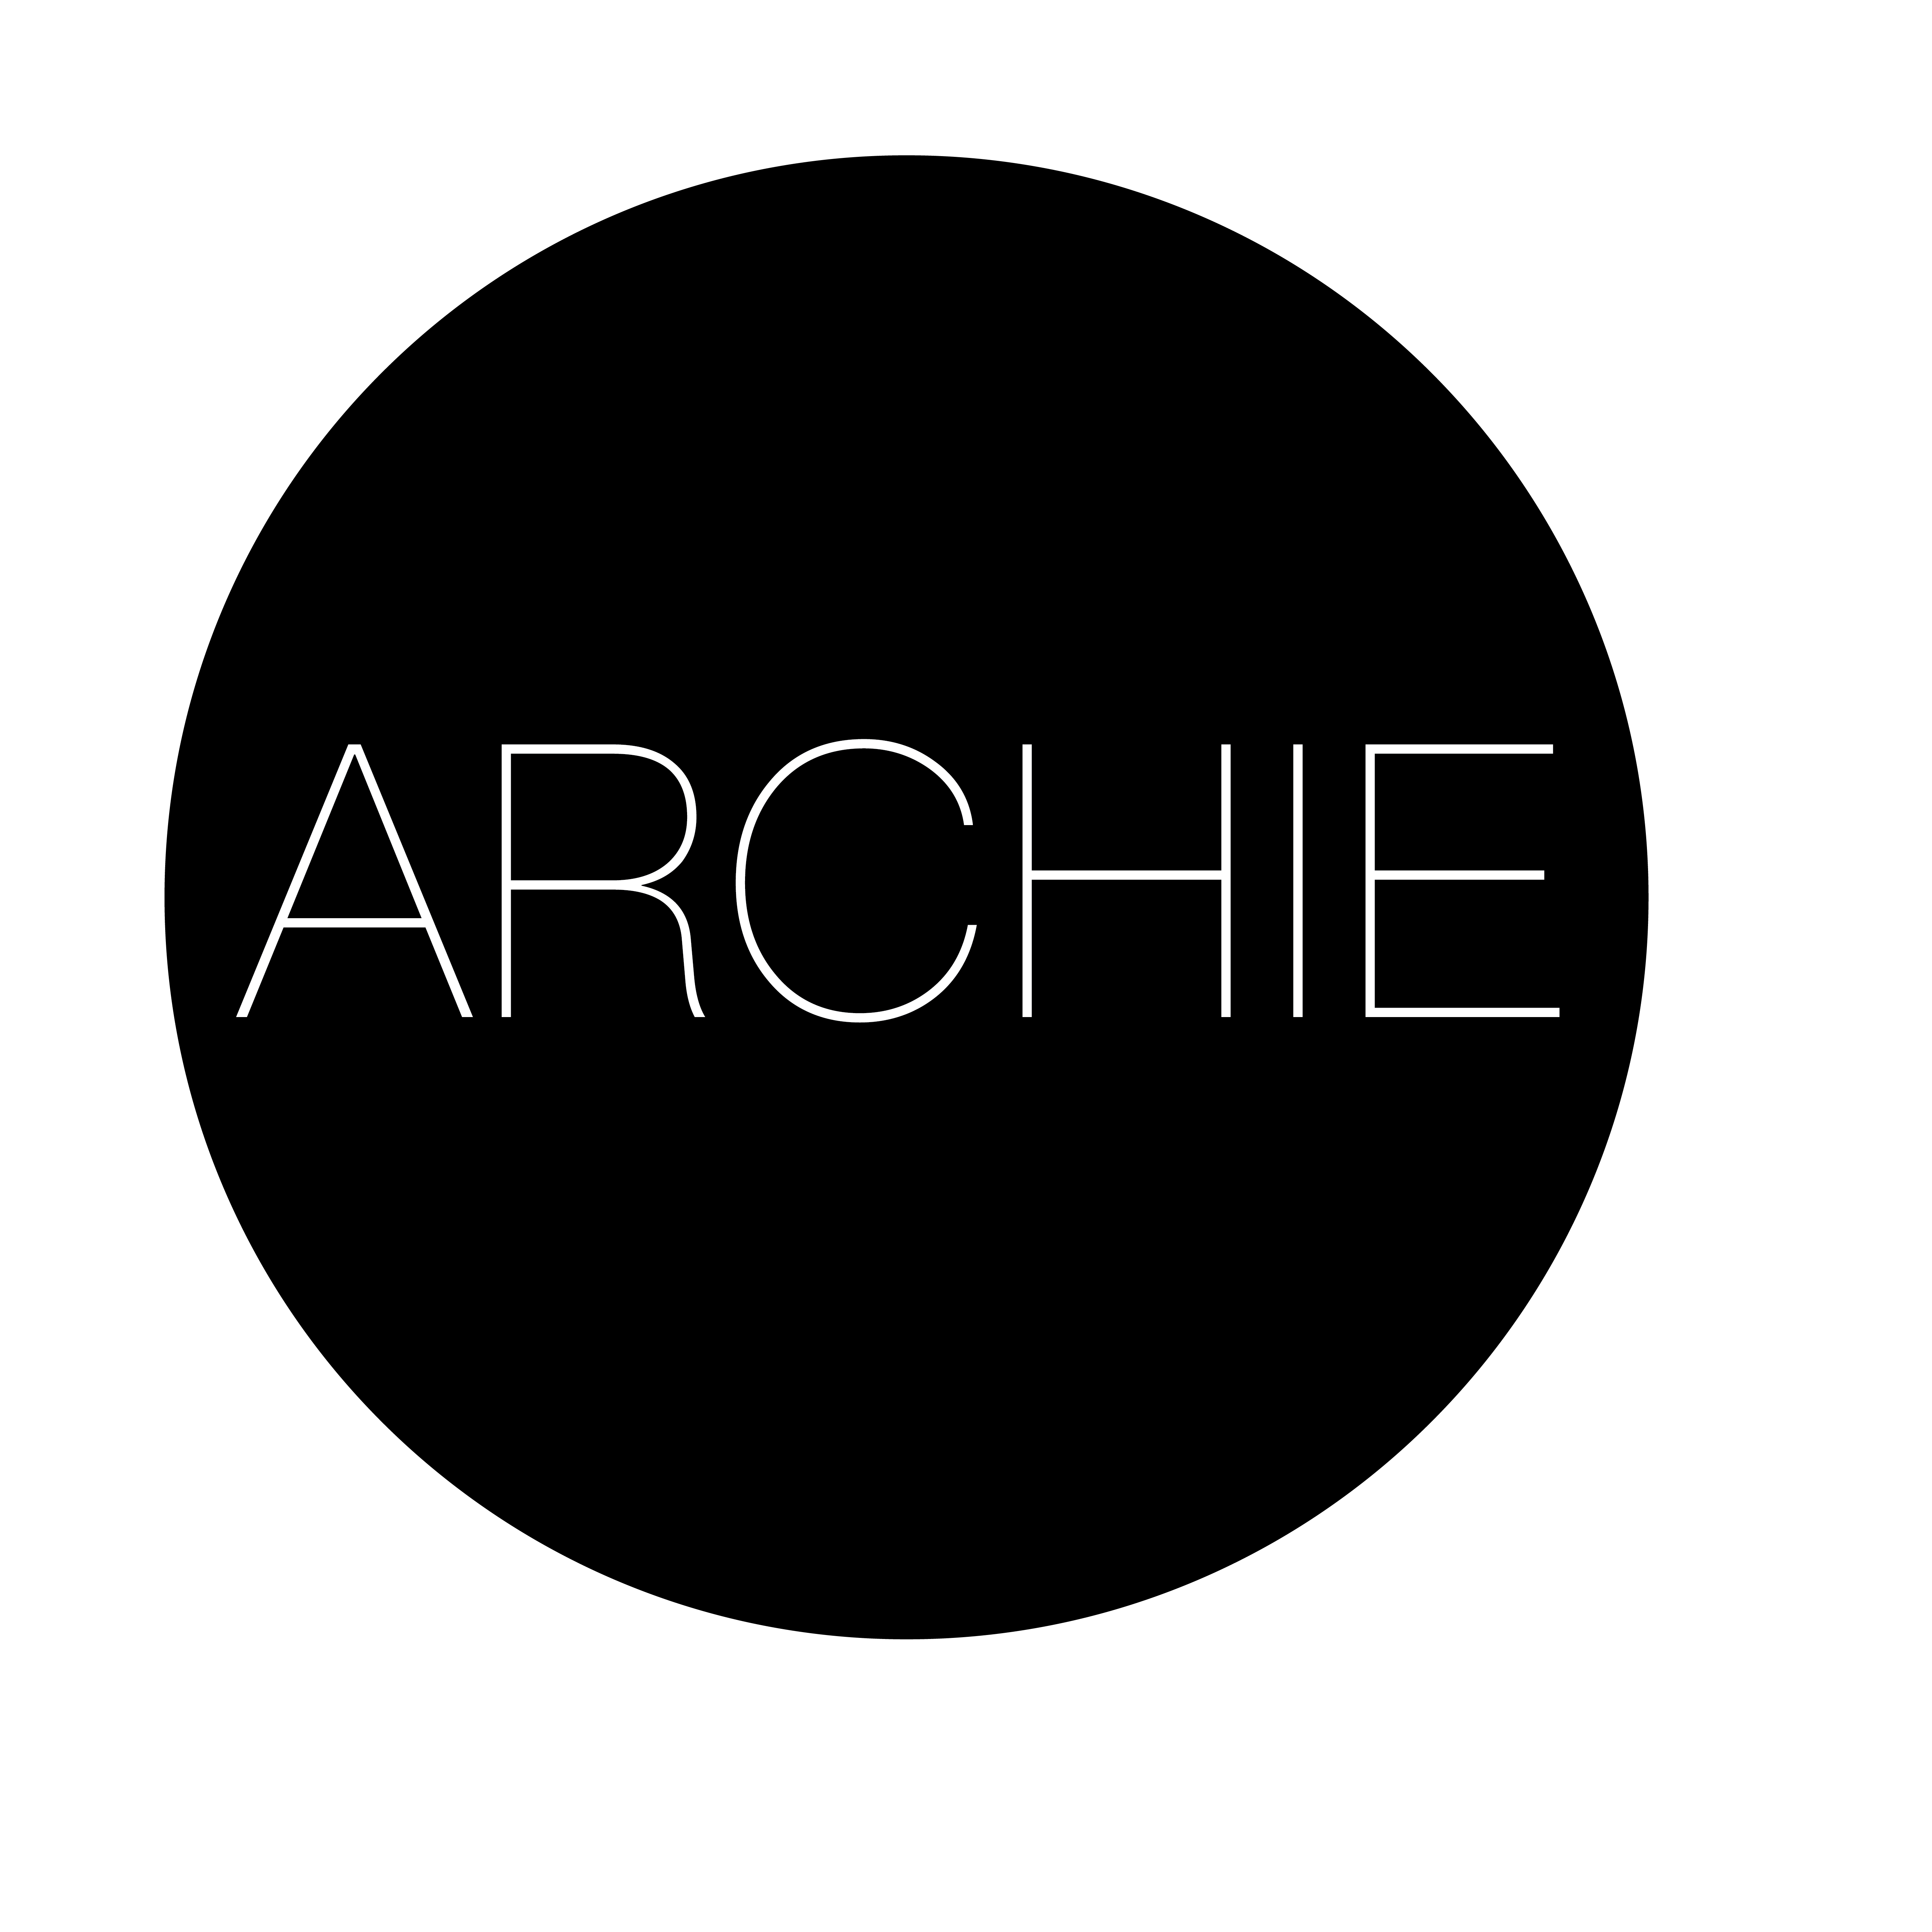 Archie Film & Photography